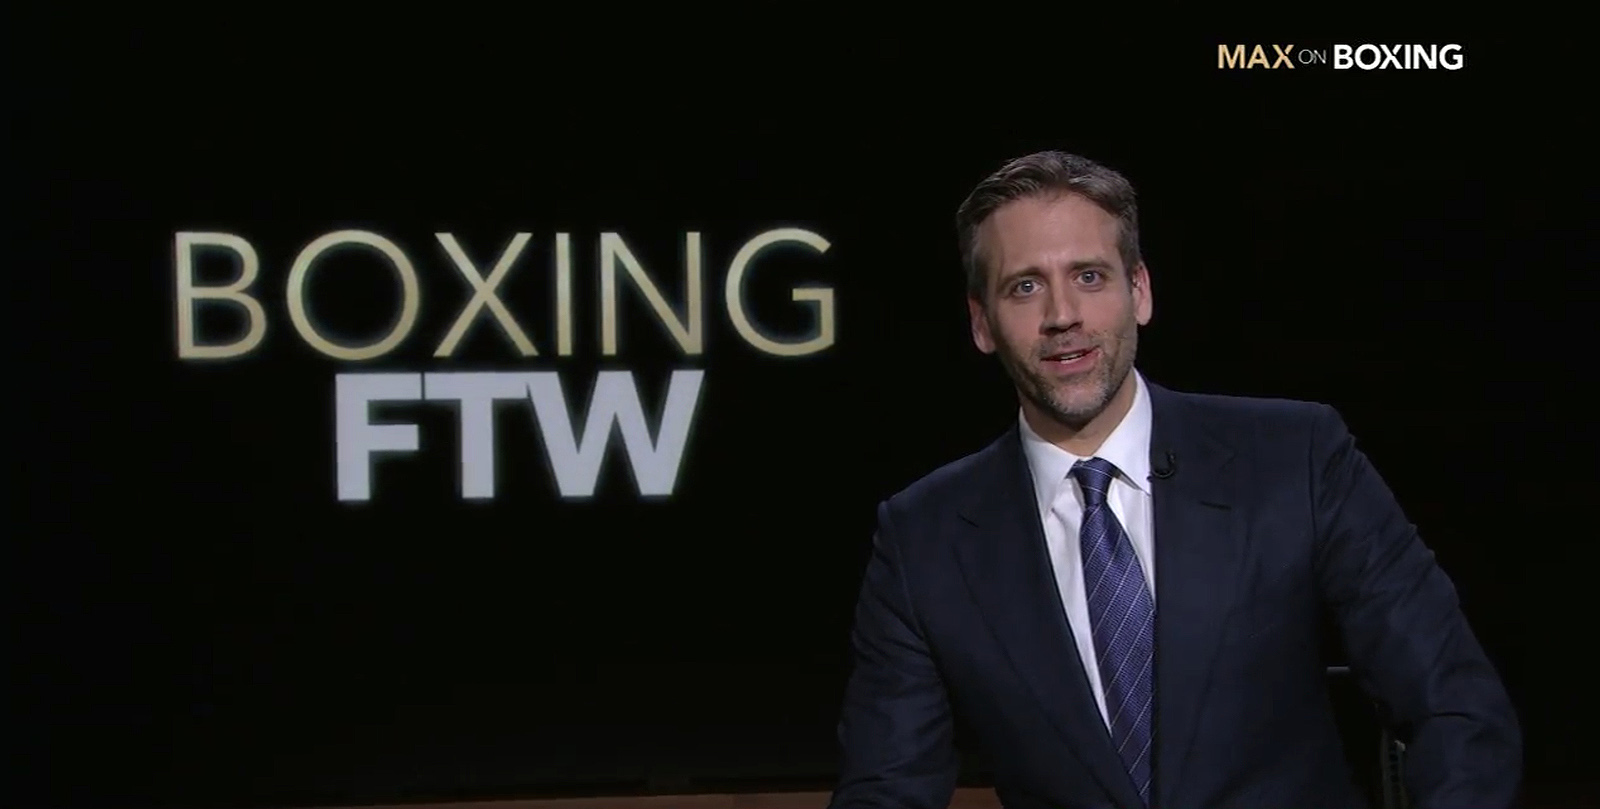 NCS_Max-On-Boxing_016